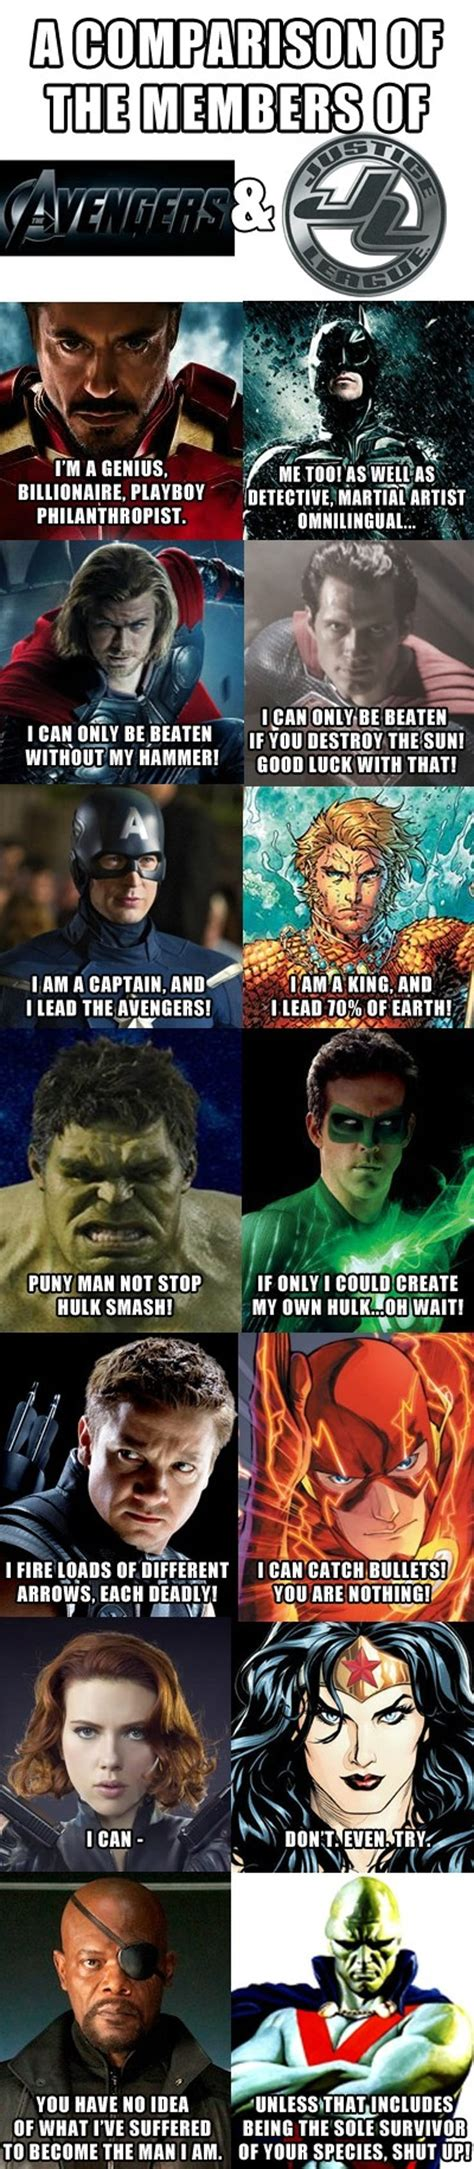 Justice League Meme - 37 hilarious justice league vs avengers memes that might start a war